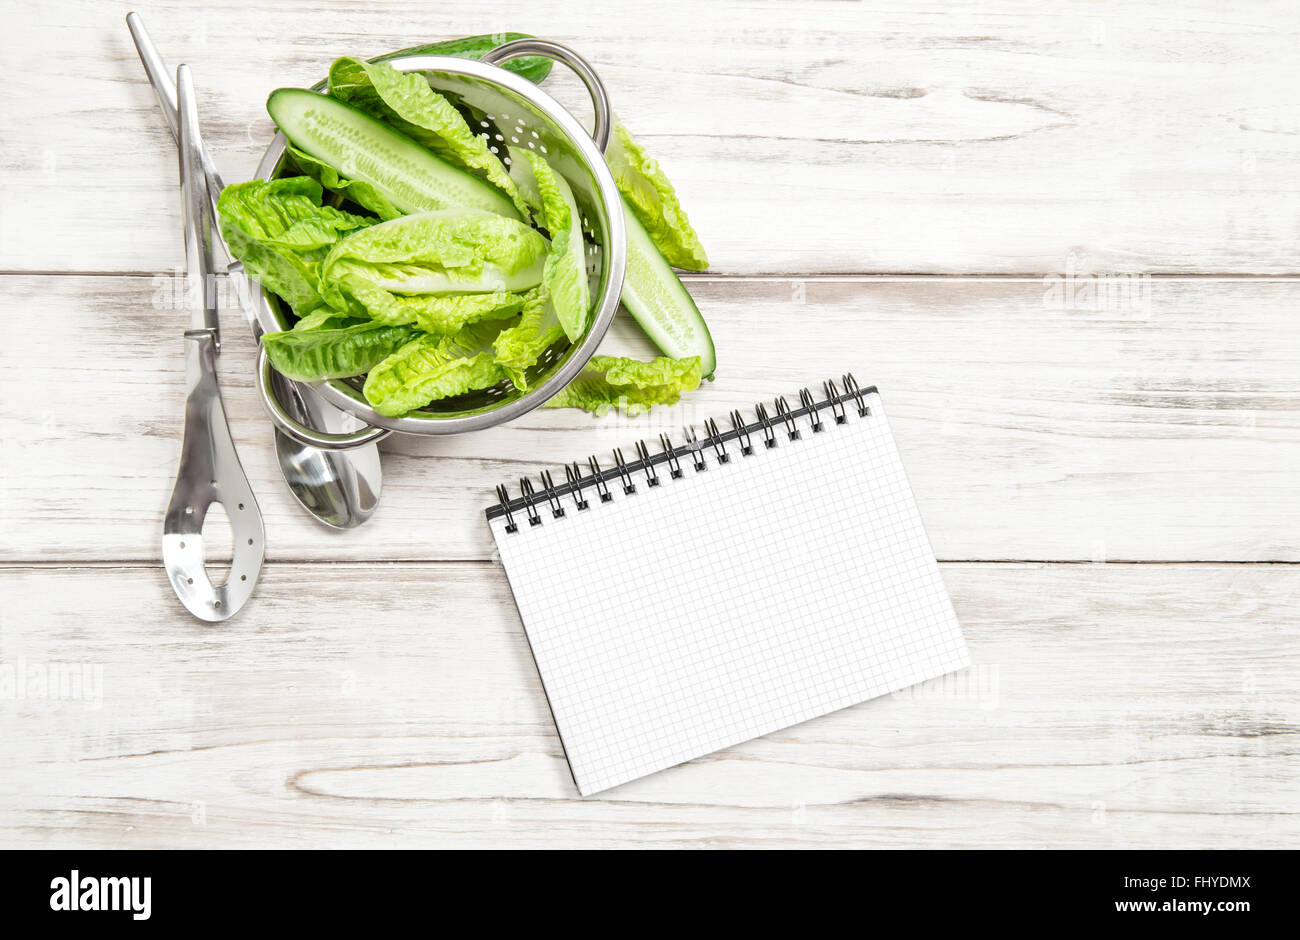 Green salad leaves and recipe book on white wood kitchen table stock green salad leaves and recipe book on white wood kitchen table healthy food concept forumfinder Gallery